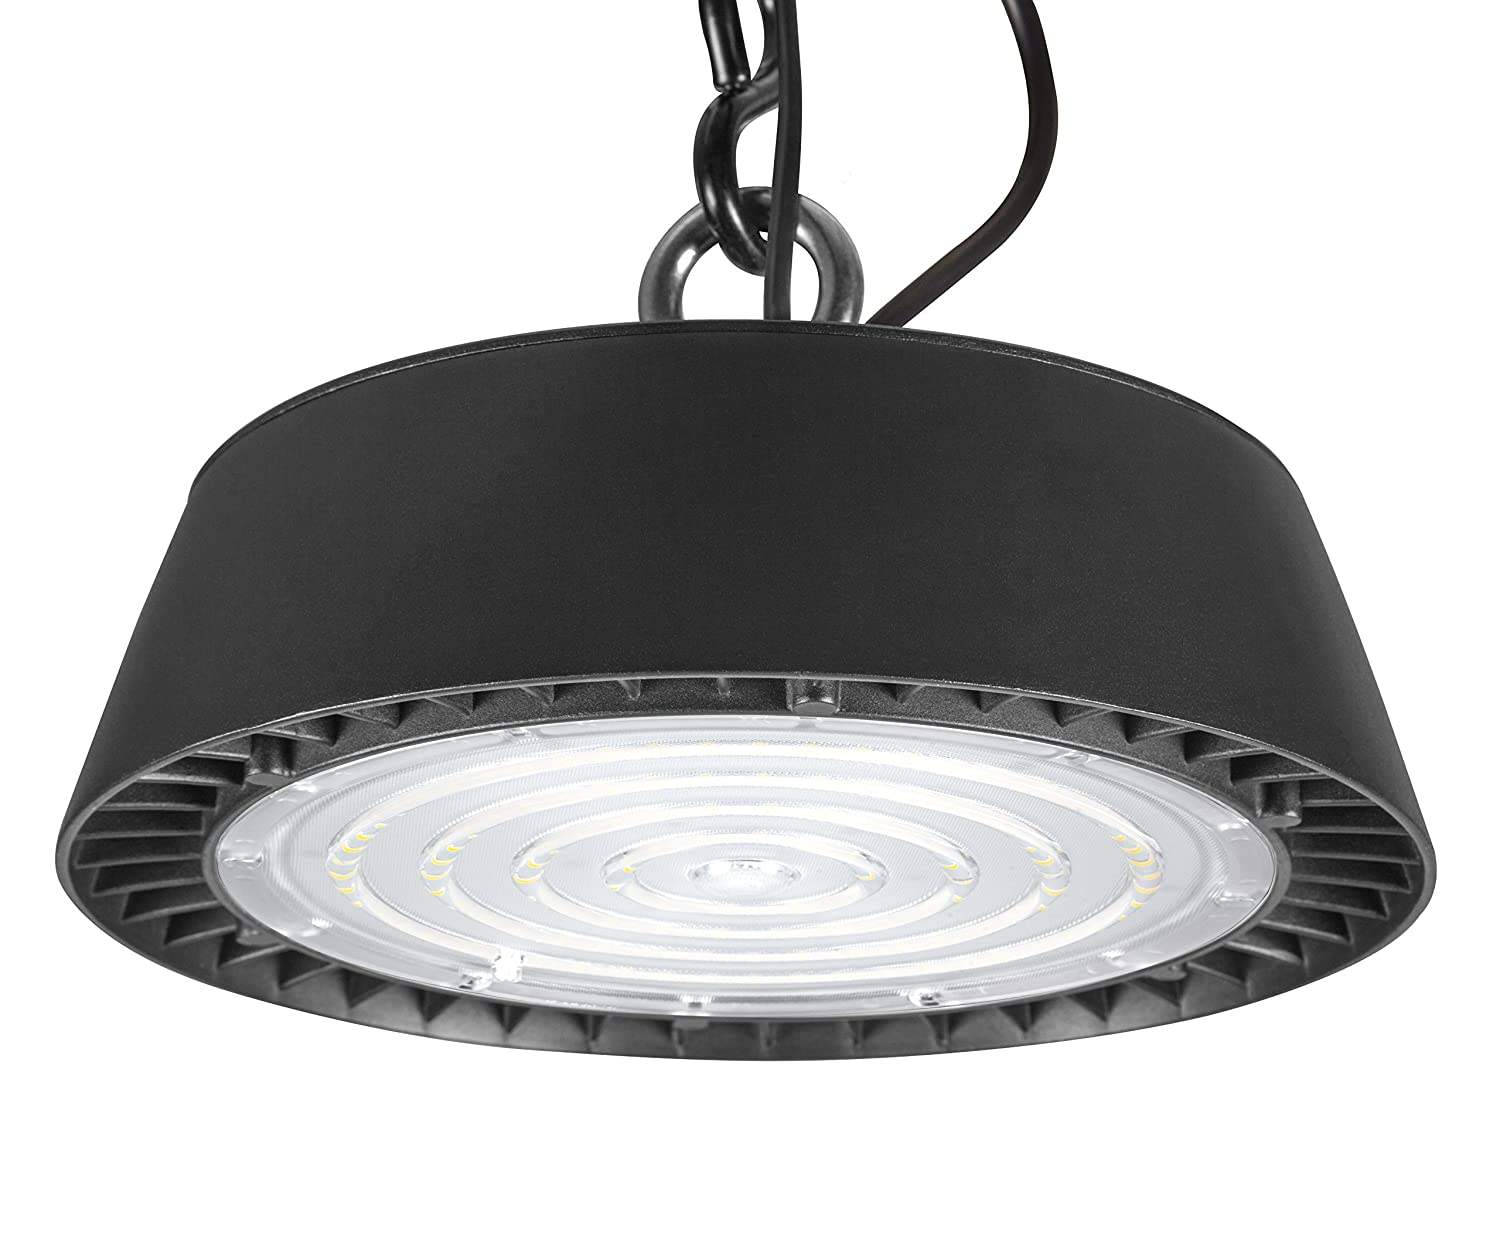 UL Listed Inc. Dimmable Sleek Super Bright Commercial Bay Lighting with Fresnel Lens Hyperikon UFO LED High Bay Light 200W 28000 Lumens Waterproof IP65 Rating 5700k